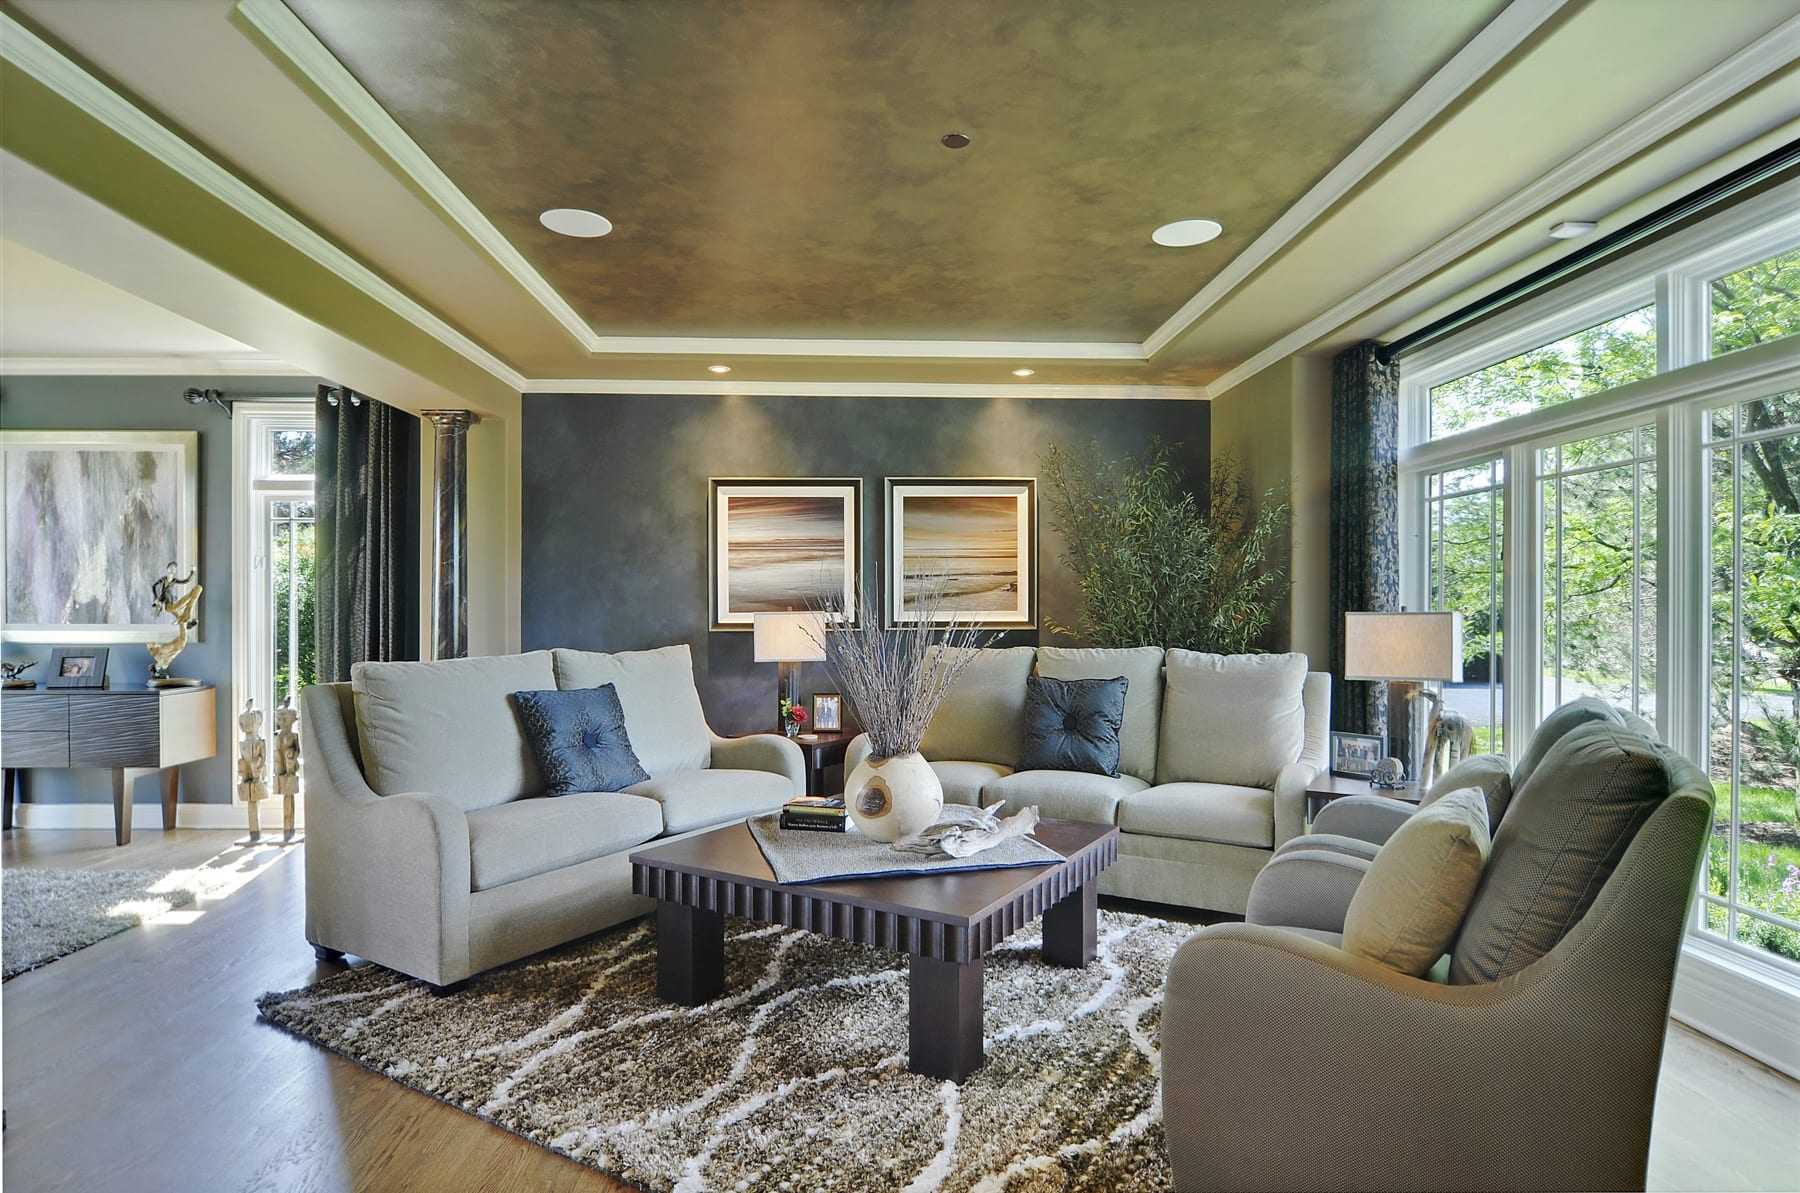 This Living Room Project Began With An Interior Design Consultation. The  Design Plan Included A